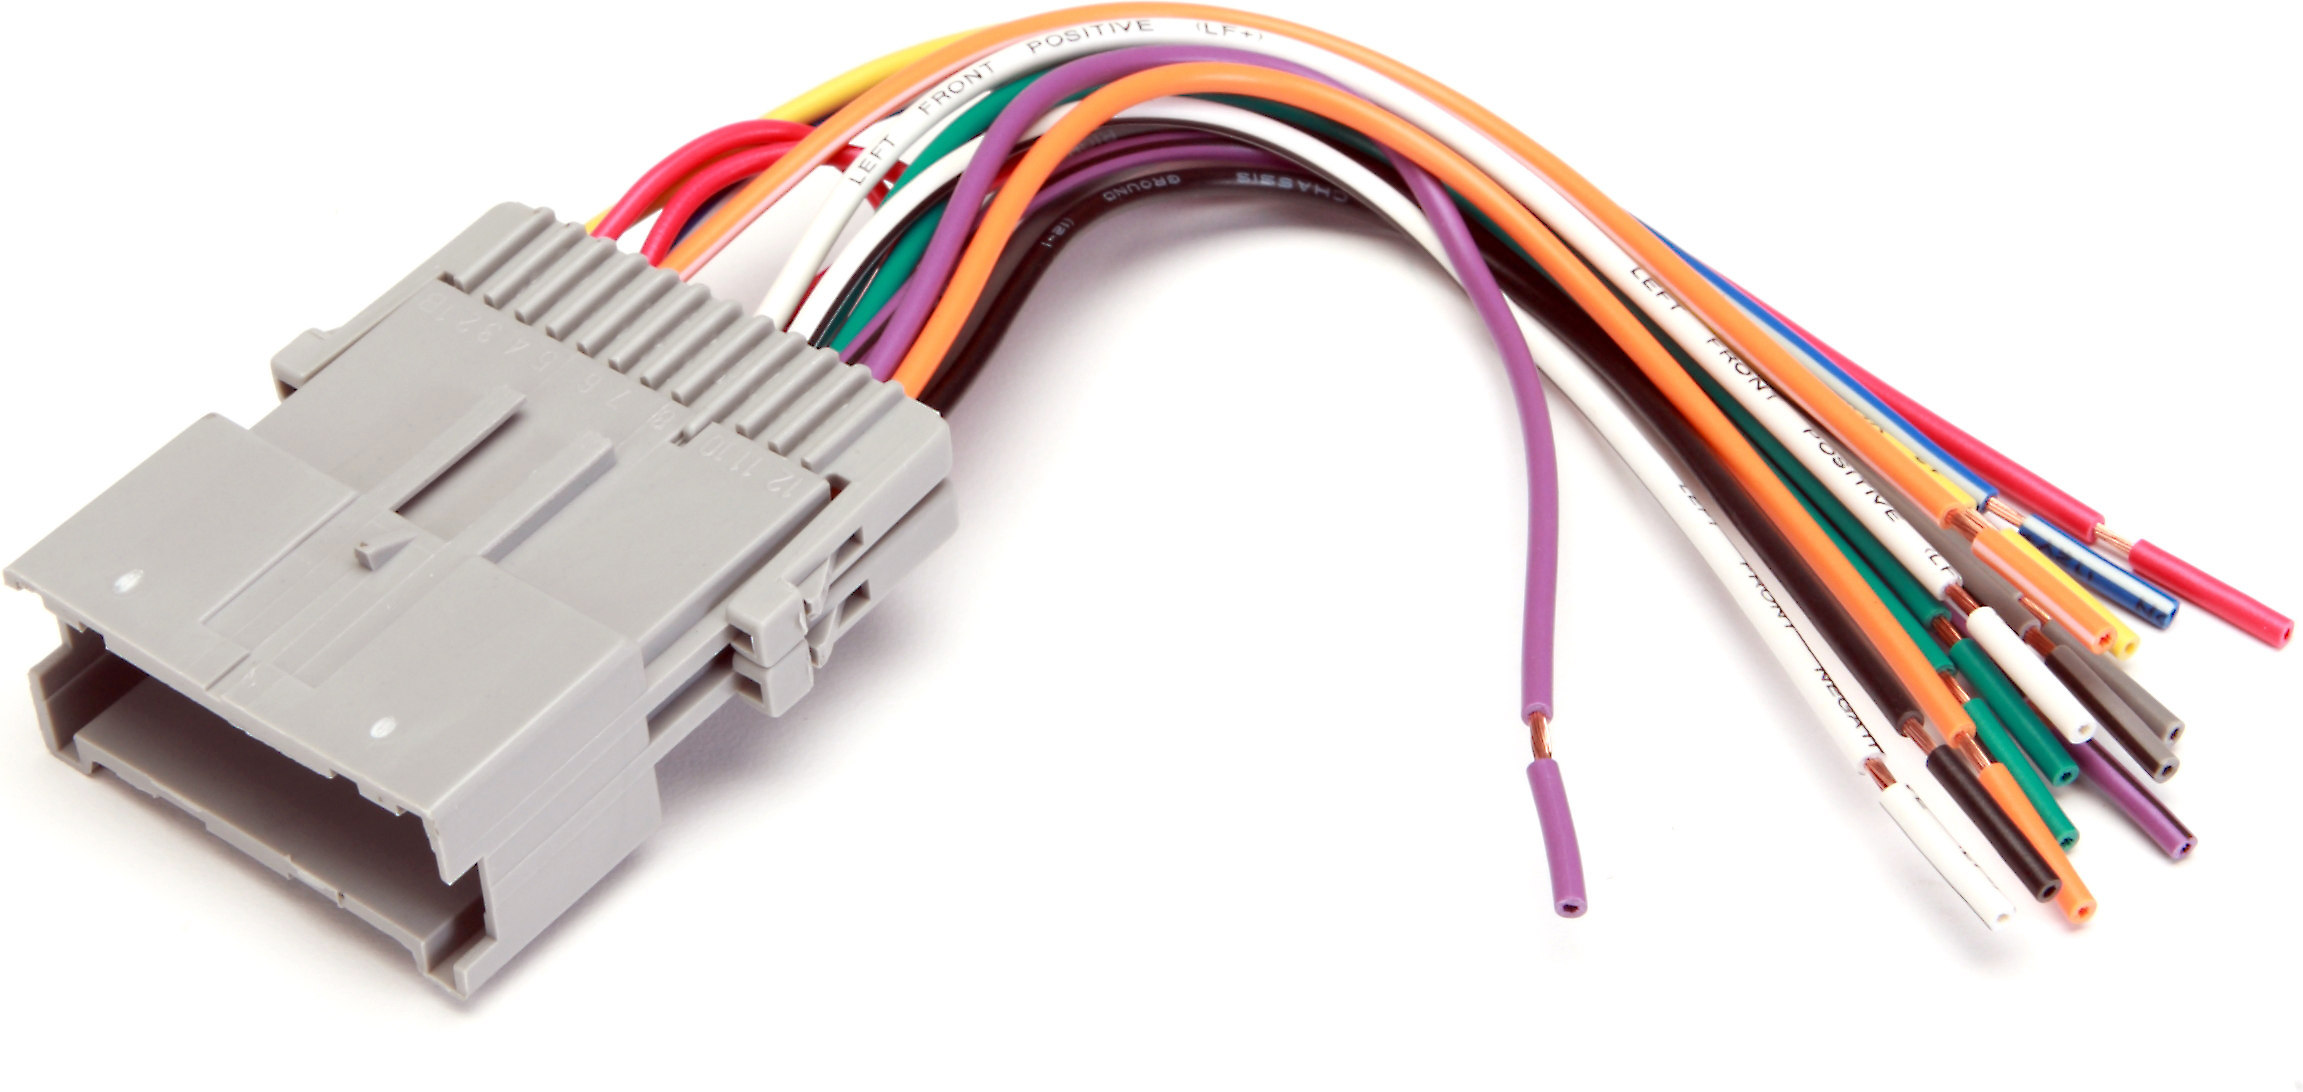 [SCHEMATICS_48ZD]  Metra 70-2002 Receiver Wiring Harness Connect a new car stereo in select  2000-05 Chevrolet and Saturn vehicles at Crutchfield | Receiver Wiring Harness Saturn |  | Crutchfield